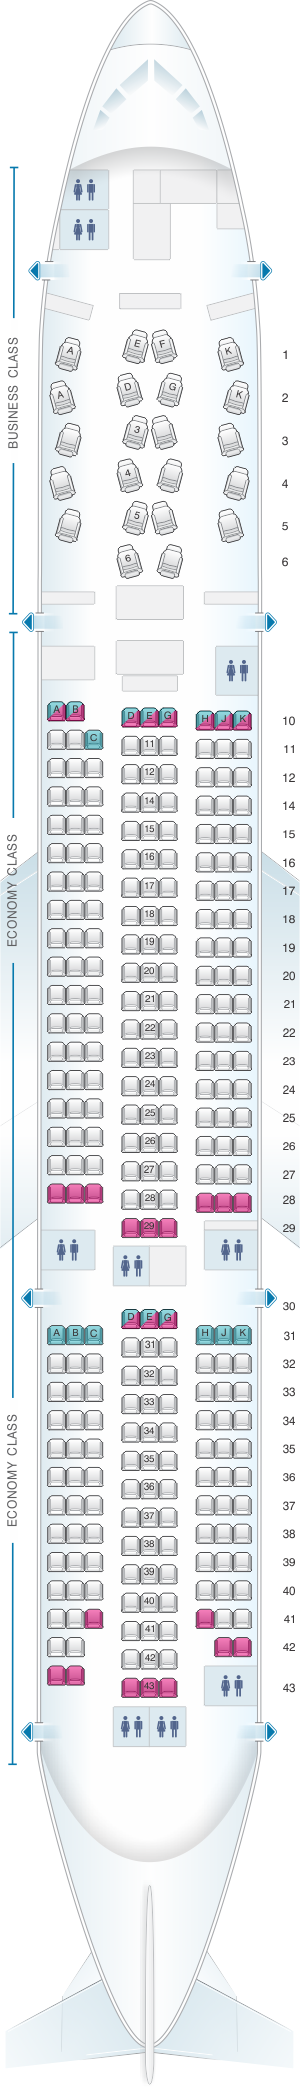 Seat map for Asiana Airlines Boeing B777 200ER 300PAX V2